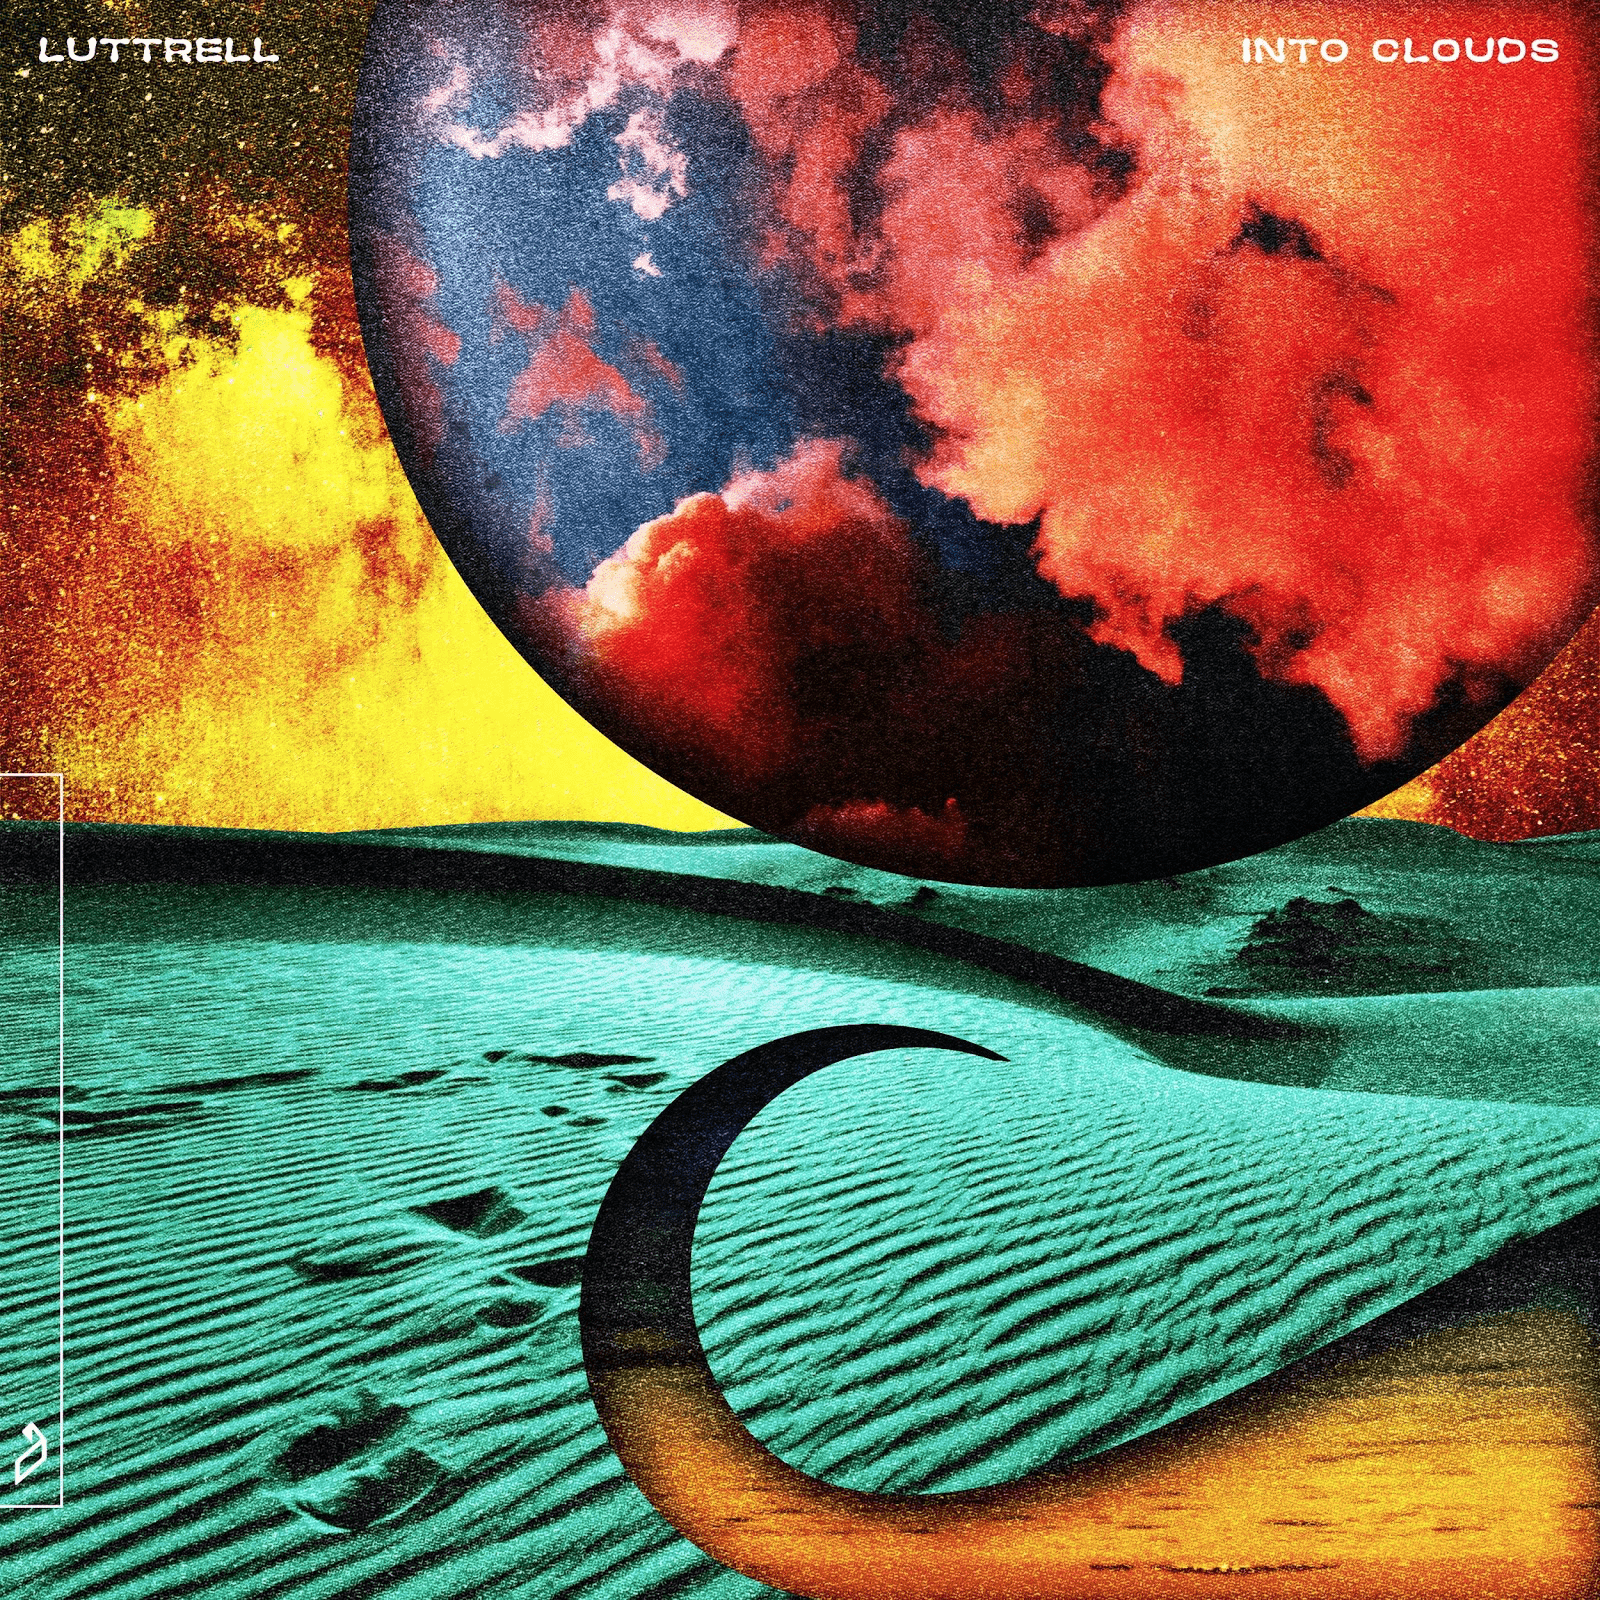 Luttrell (ex-The M Machine) shares new single 'Into Clouds' on Anjunadeep